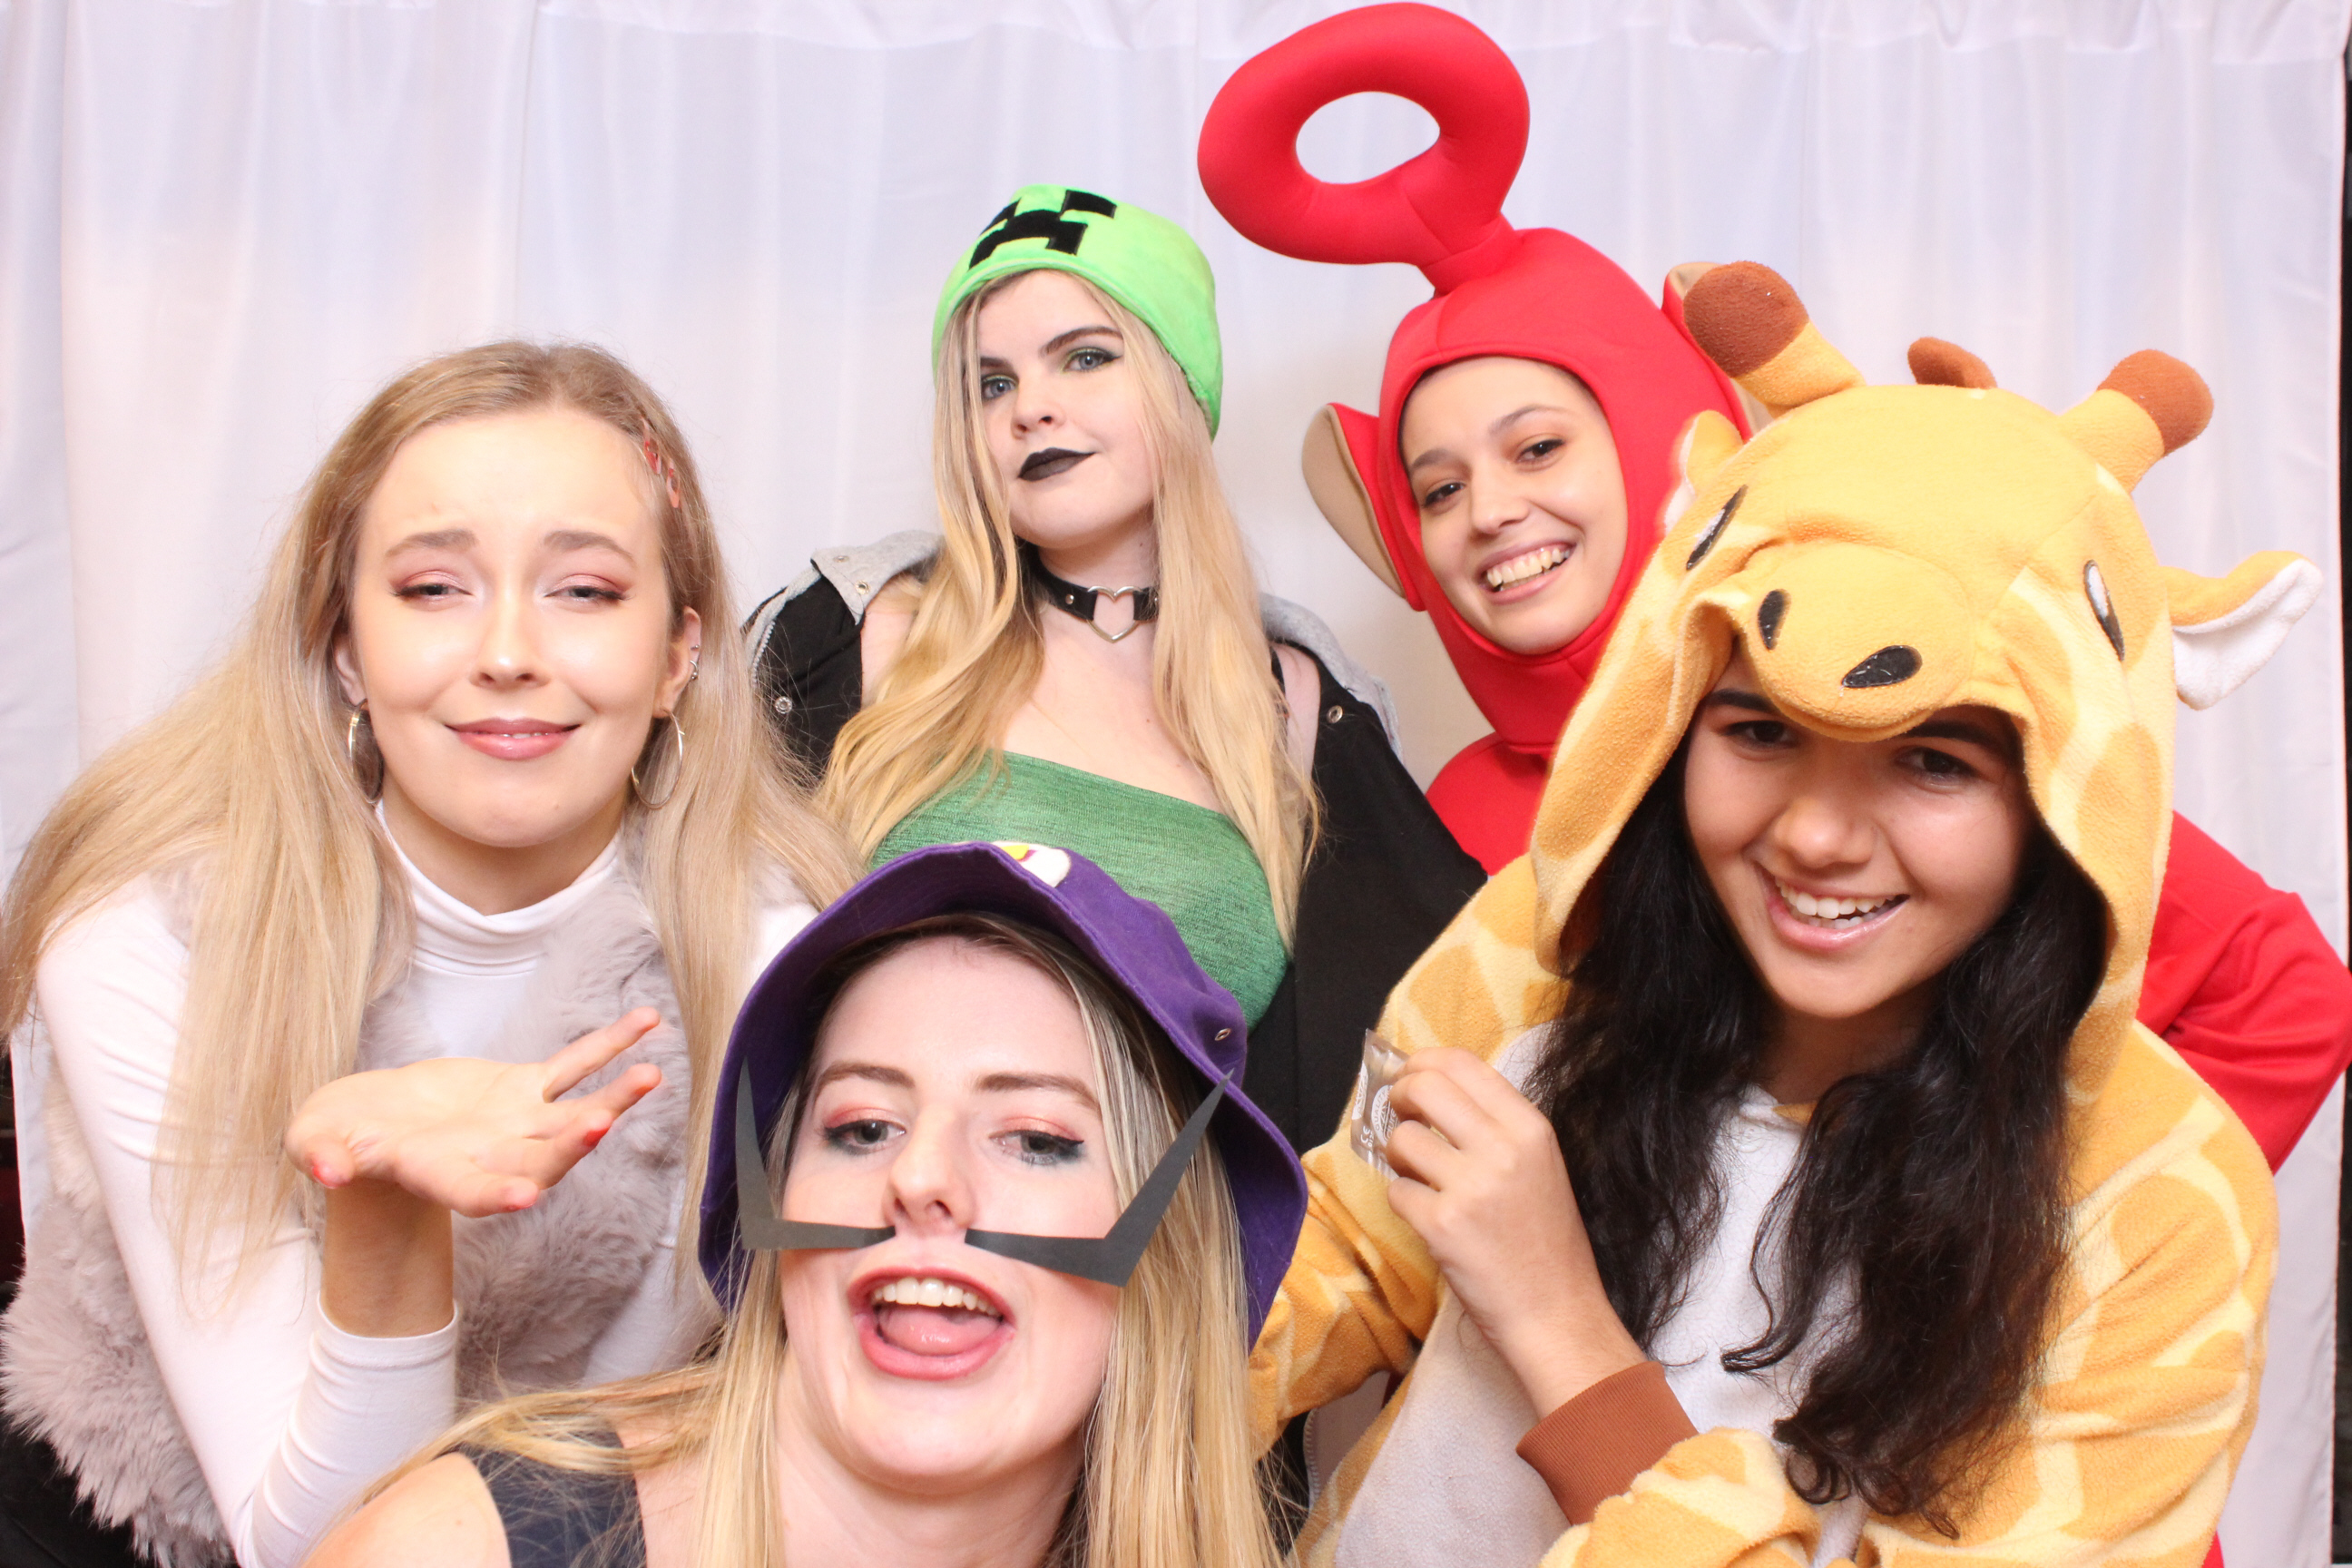 Kids Photo Booth | Photo Booth Hire Sydney | Best Photo Booth Rates